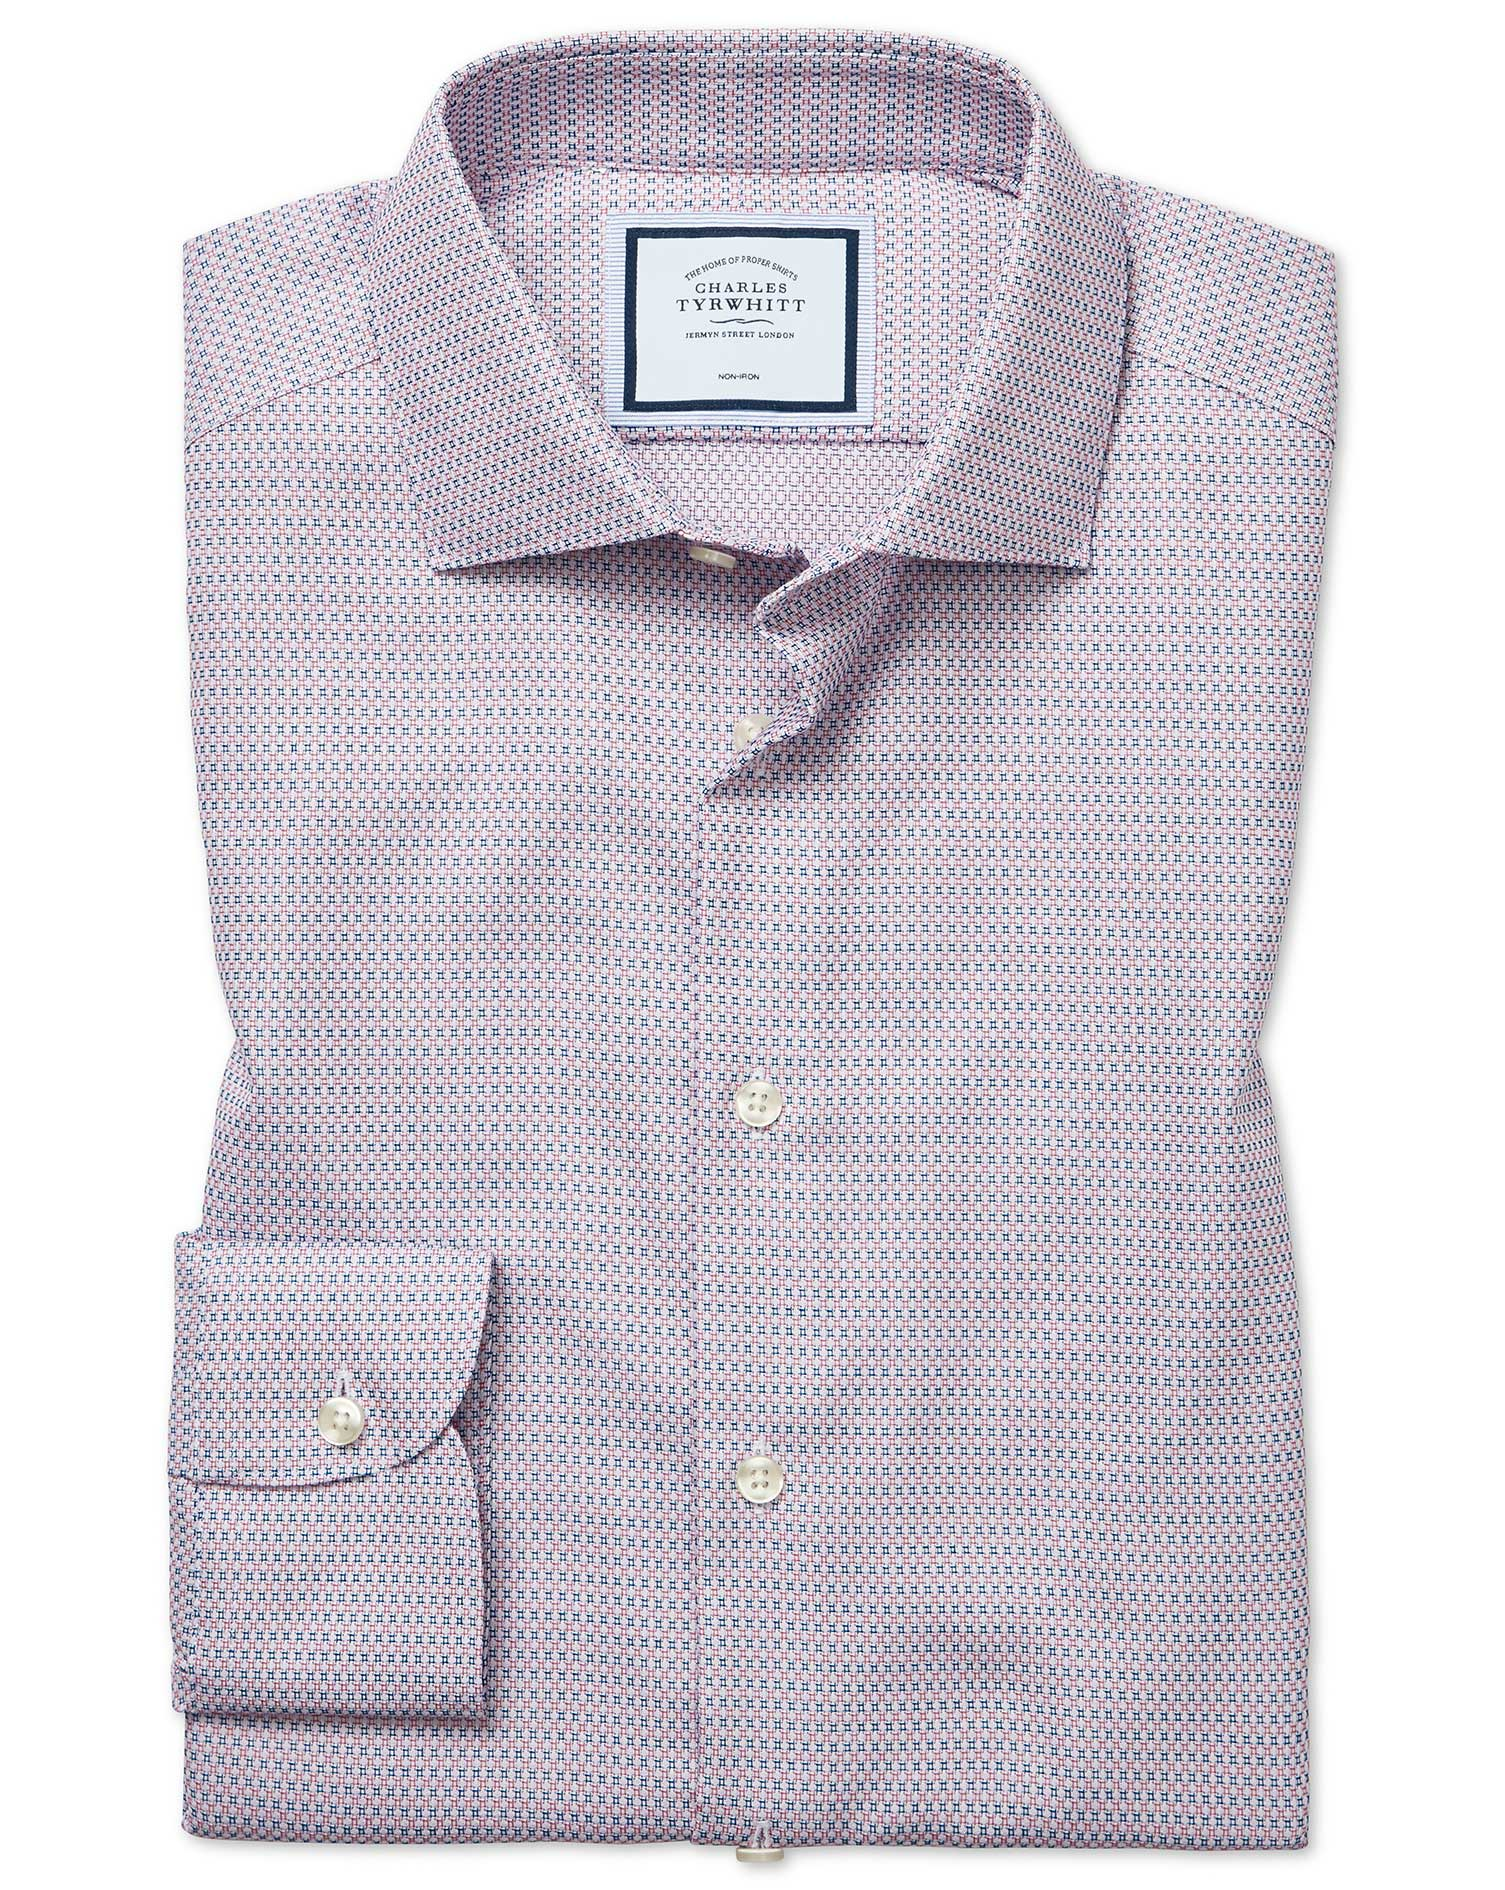 Cotton Extra Slim Fit Non-Iron Natural Stretch Textures Pink And Navy Shirt